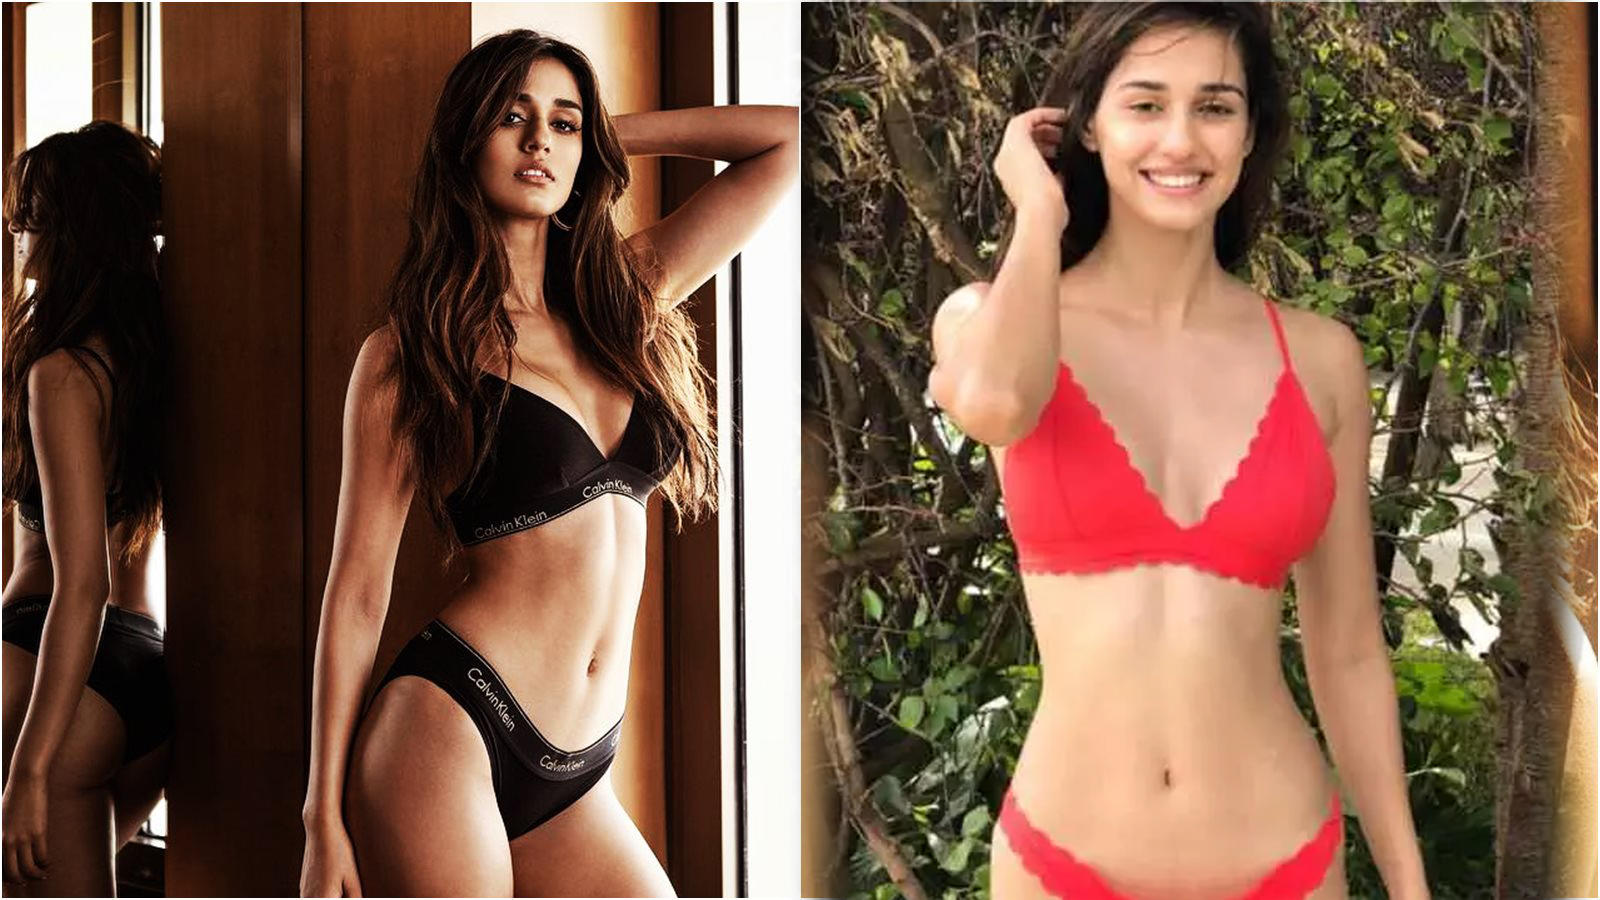 673980d77b31 Disha Patani Sexy Video of Hot Bikini Photos: Birthday girl Disha ...